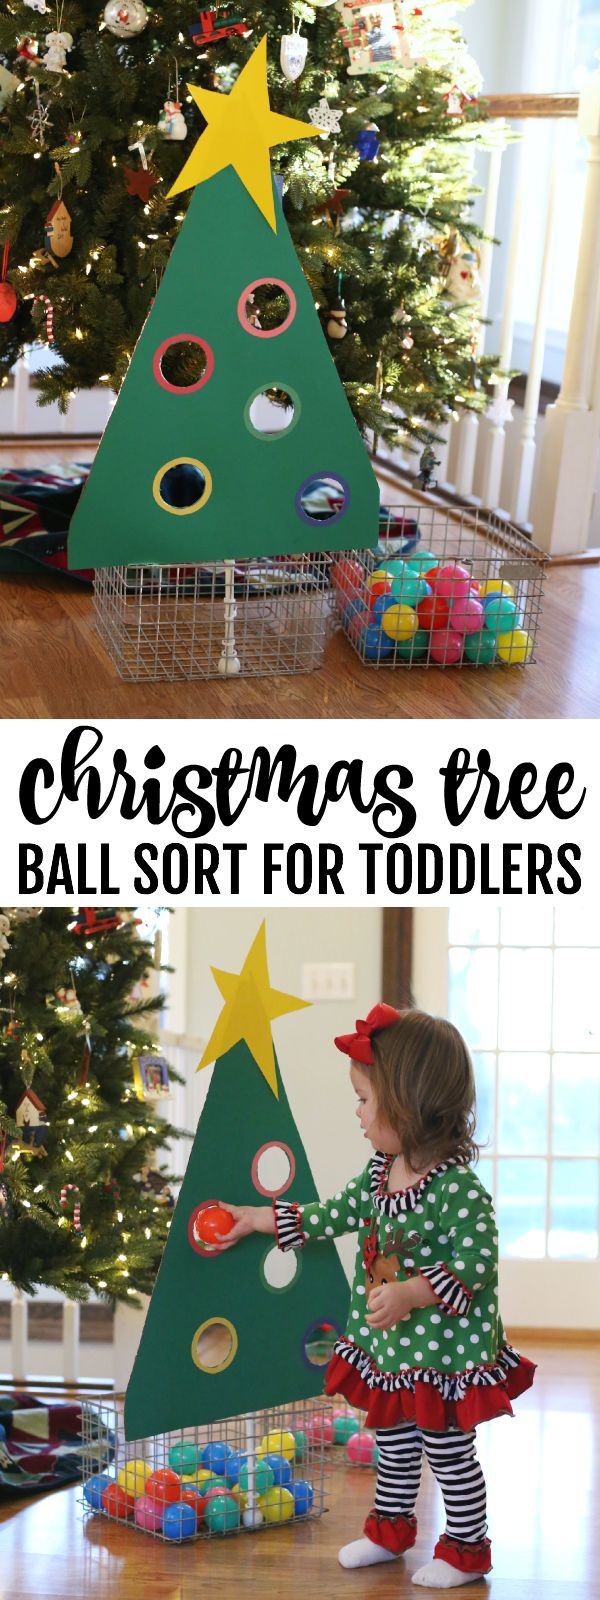 Best 25+ Christmas activities for toddlers ideas on Pinterest ...